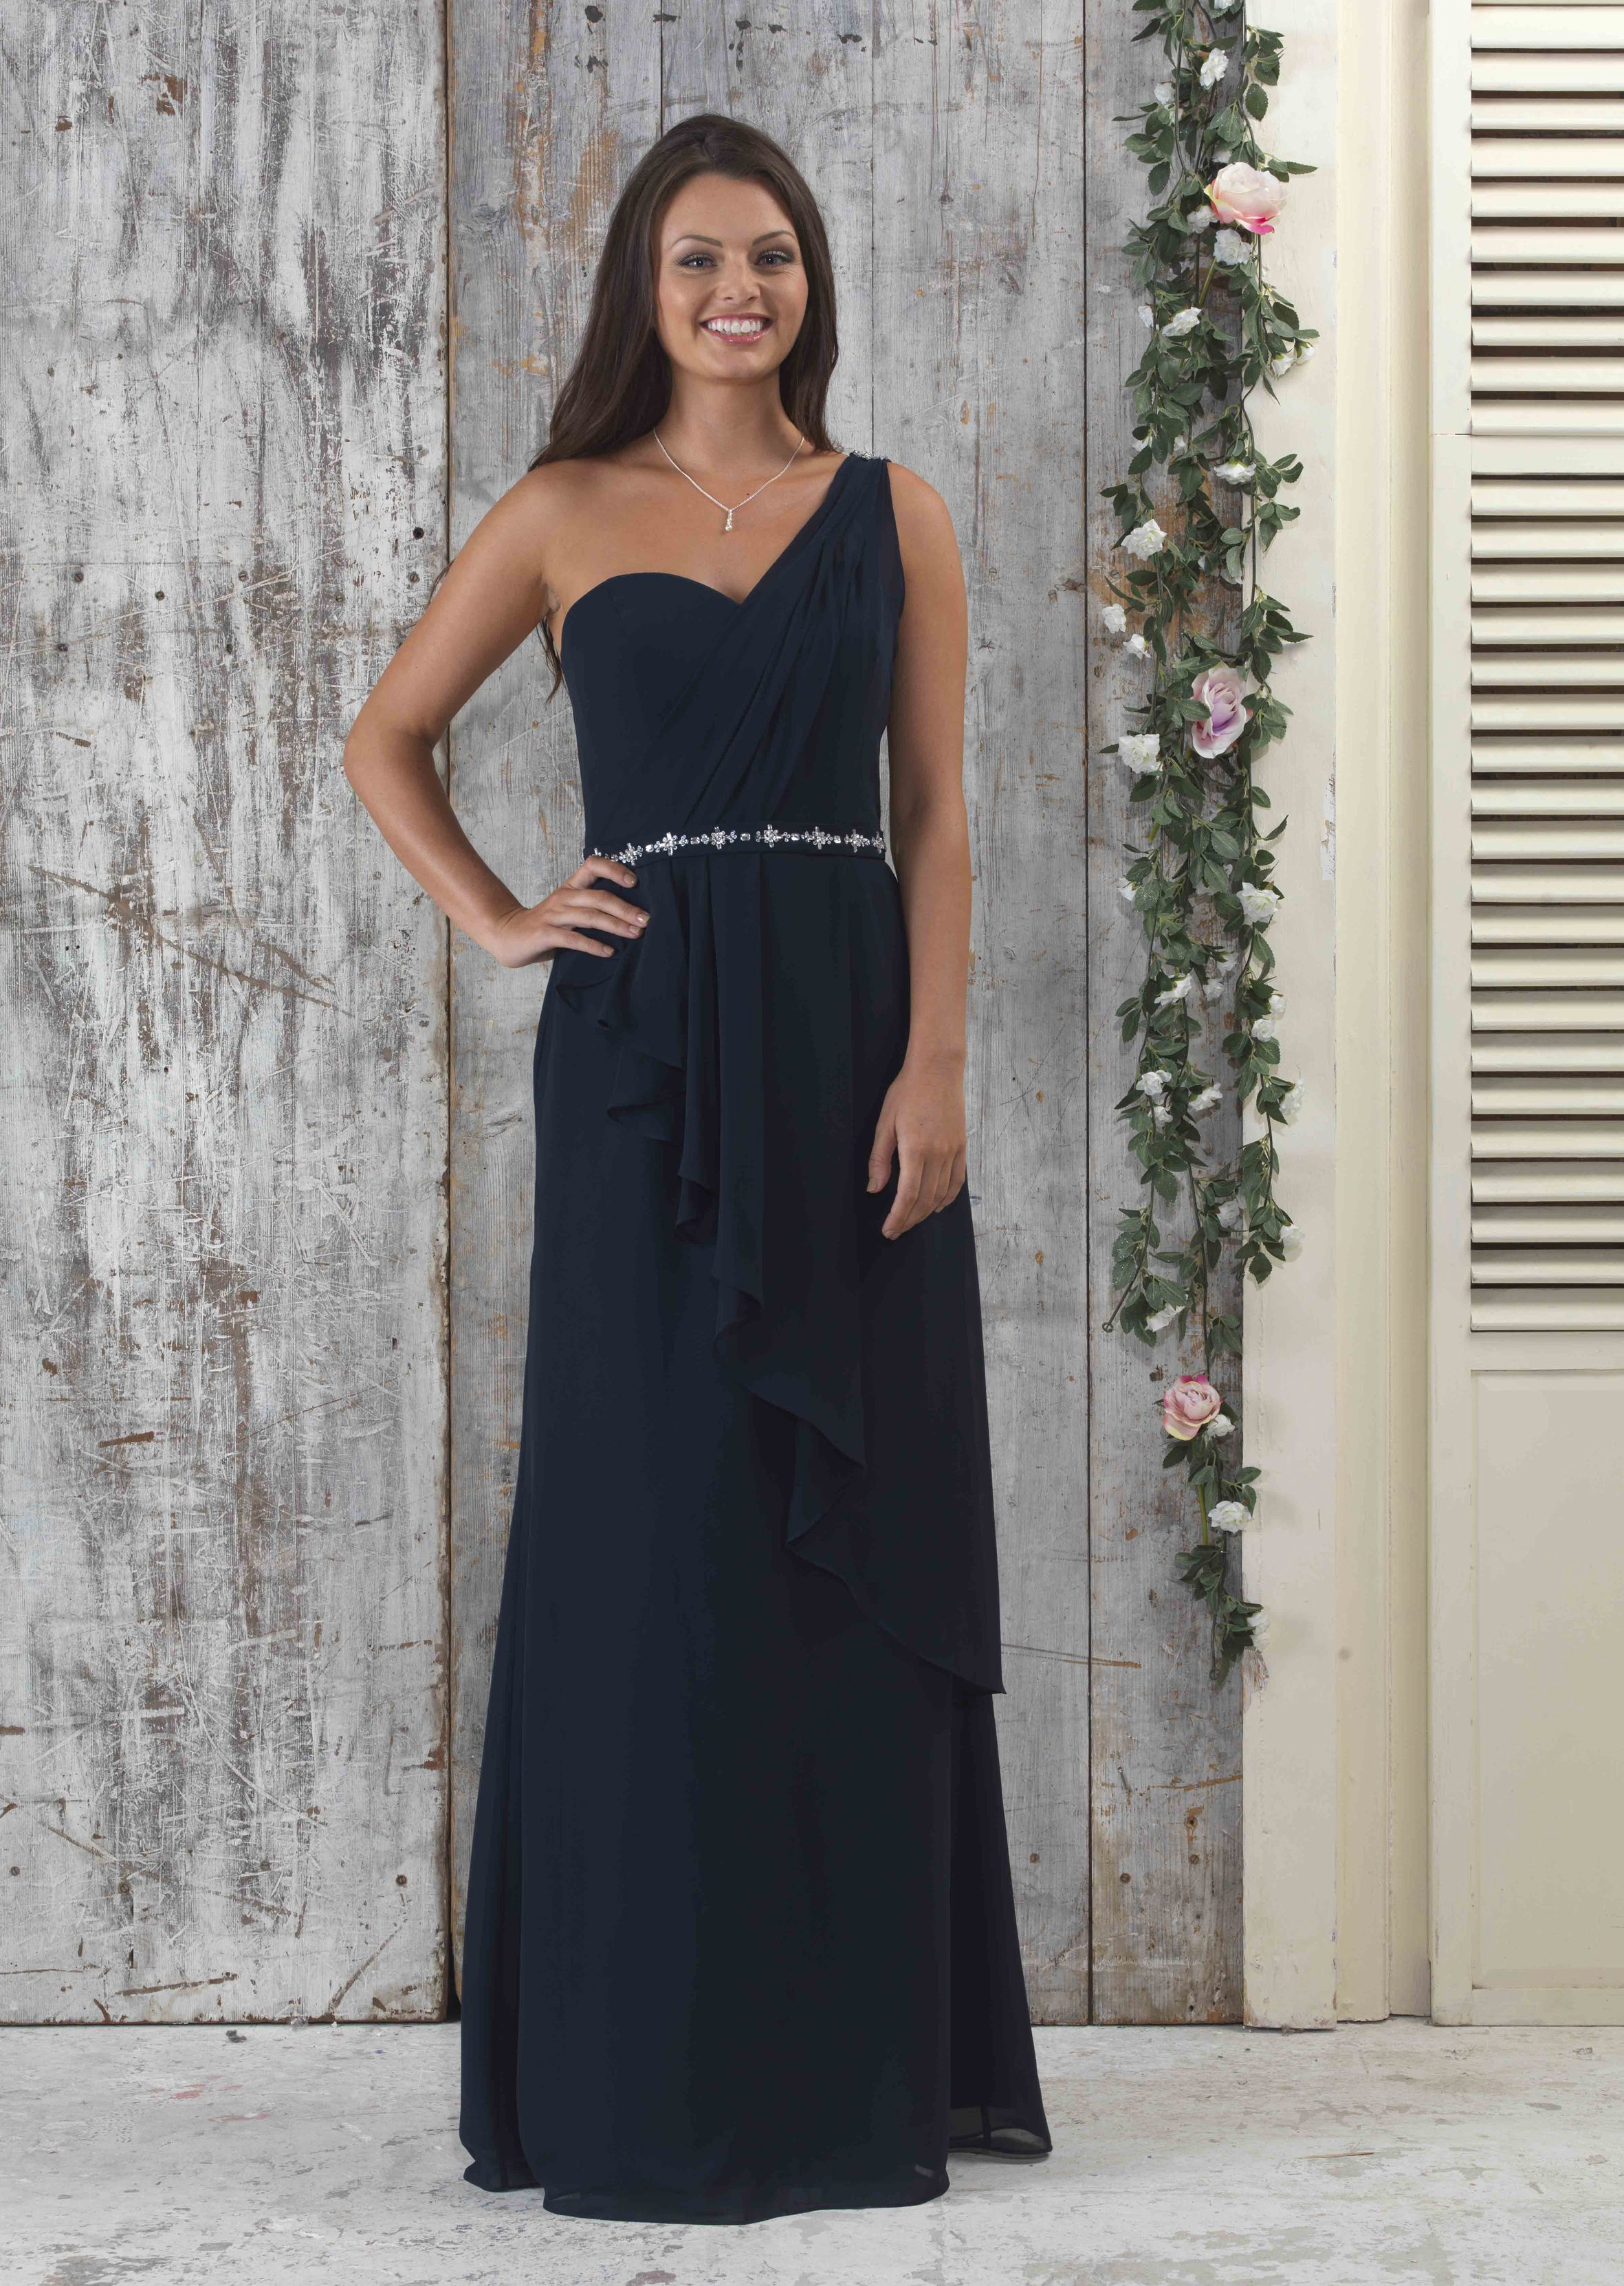 En319 one shoulder chiffon crossover front bridesmaid dress with en319 one shoulder chiffon crossover front bridesmaid dress with waterfall skirt detail front ombrellifo Images